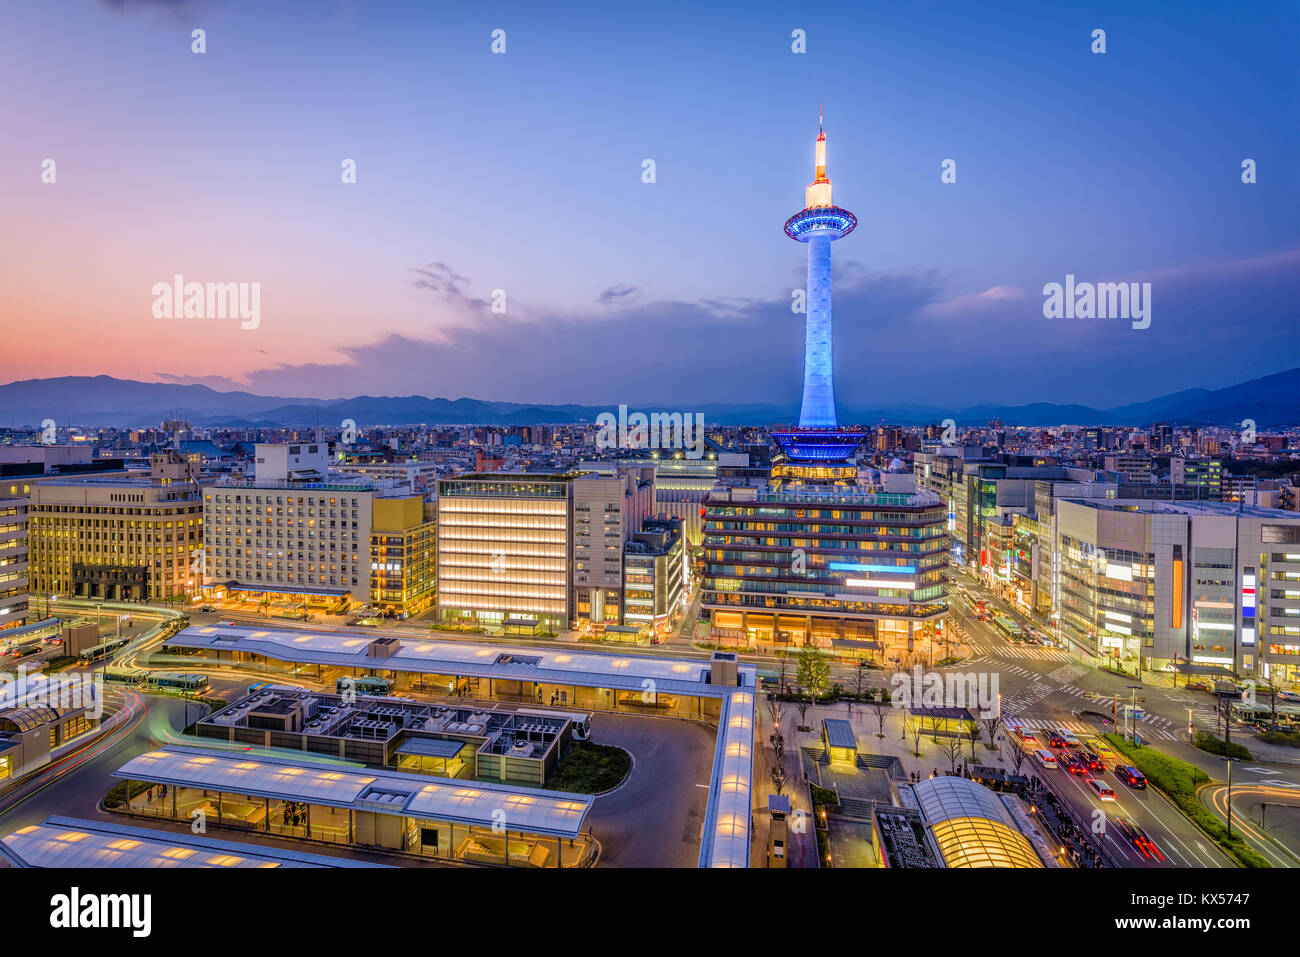 Kyoto, Japan downtown skyline and tower. - Stock Image